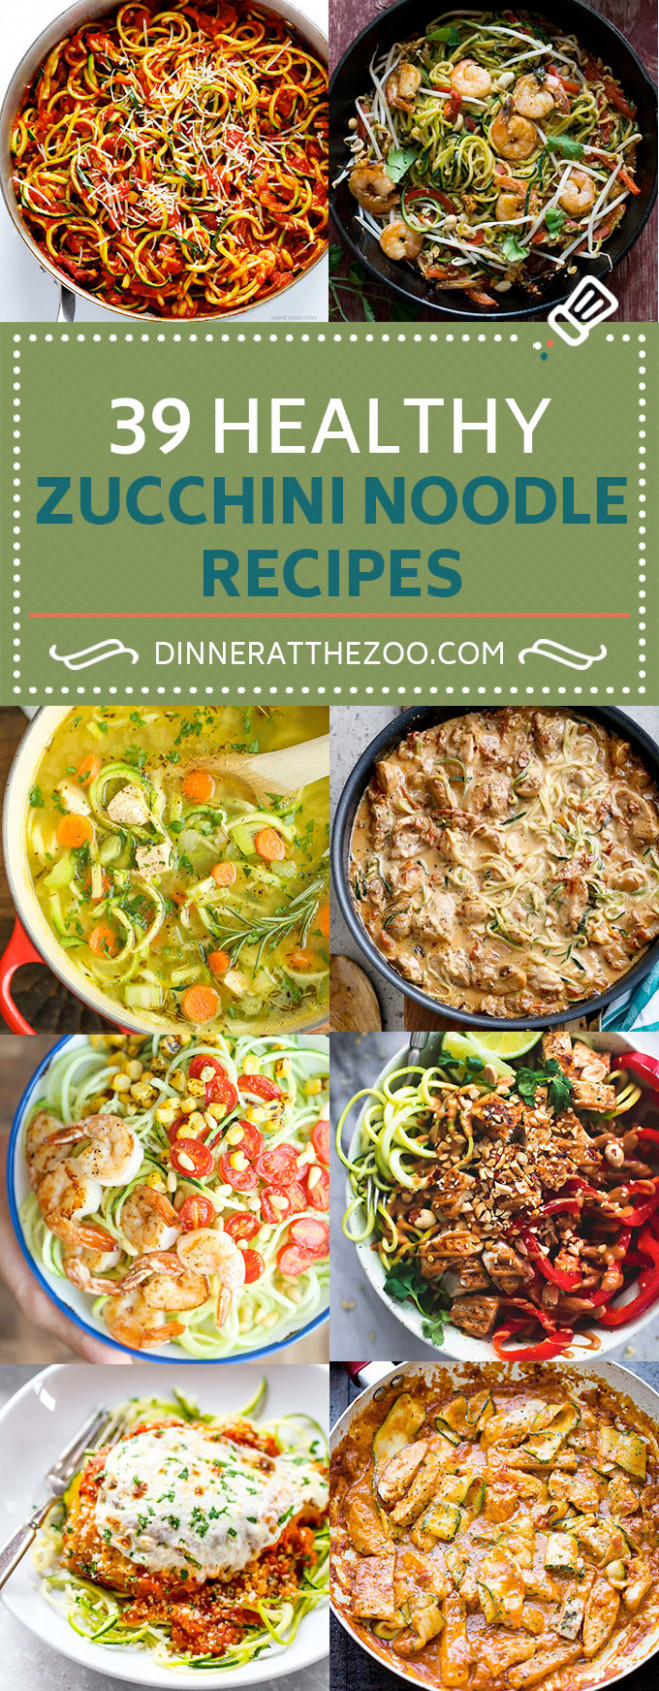 14 Healthy Zoodle (Zucchini Noodle) Recipes - Dinner At The Zoo - Healthy Zoodle Recipes With Chicken